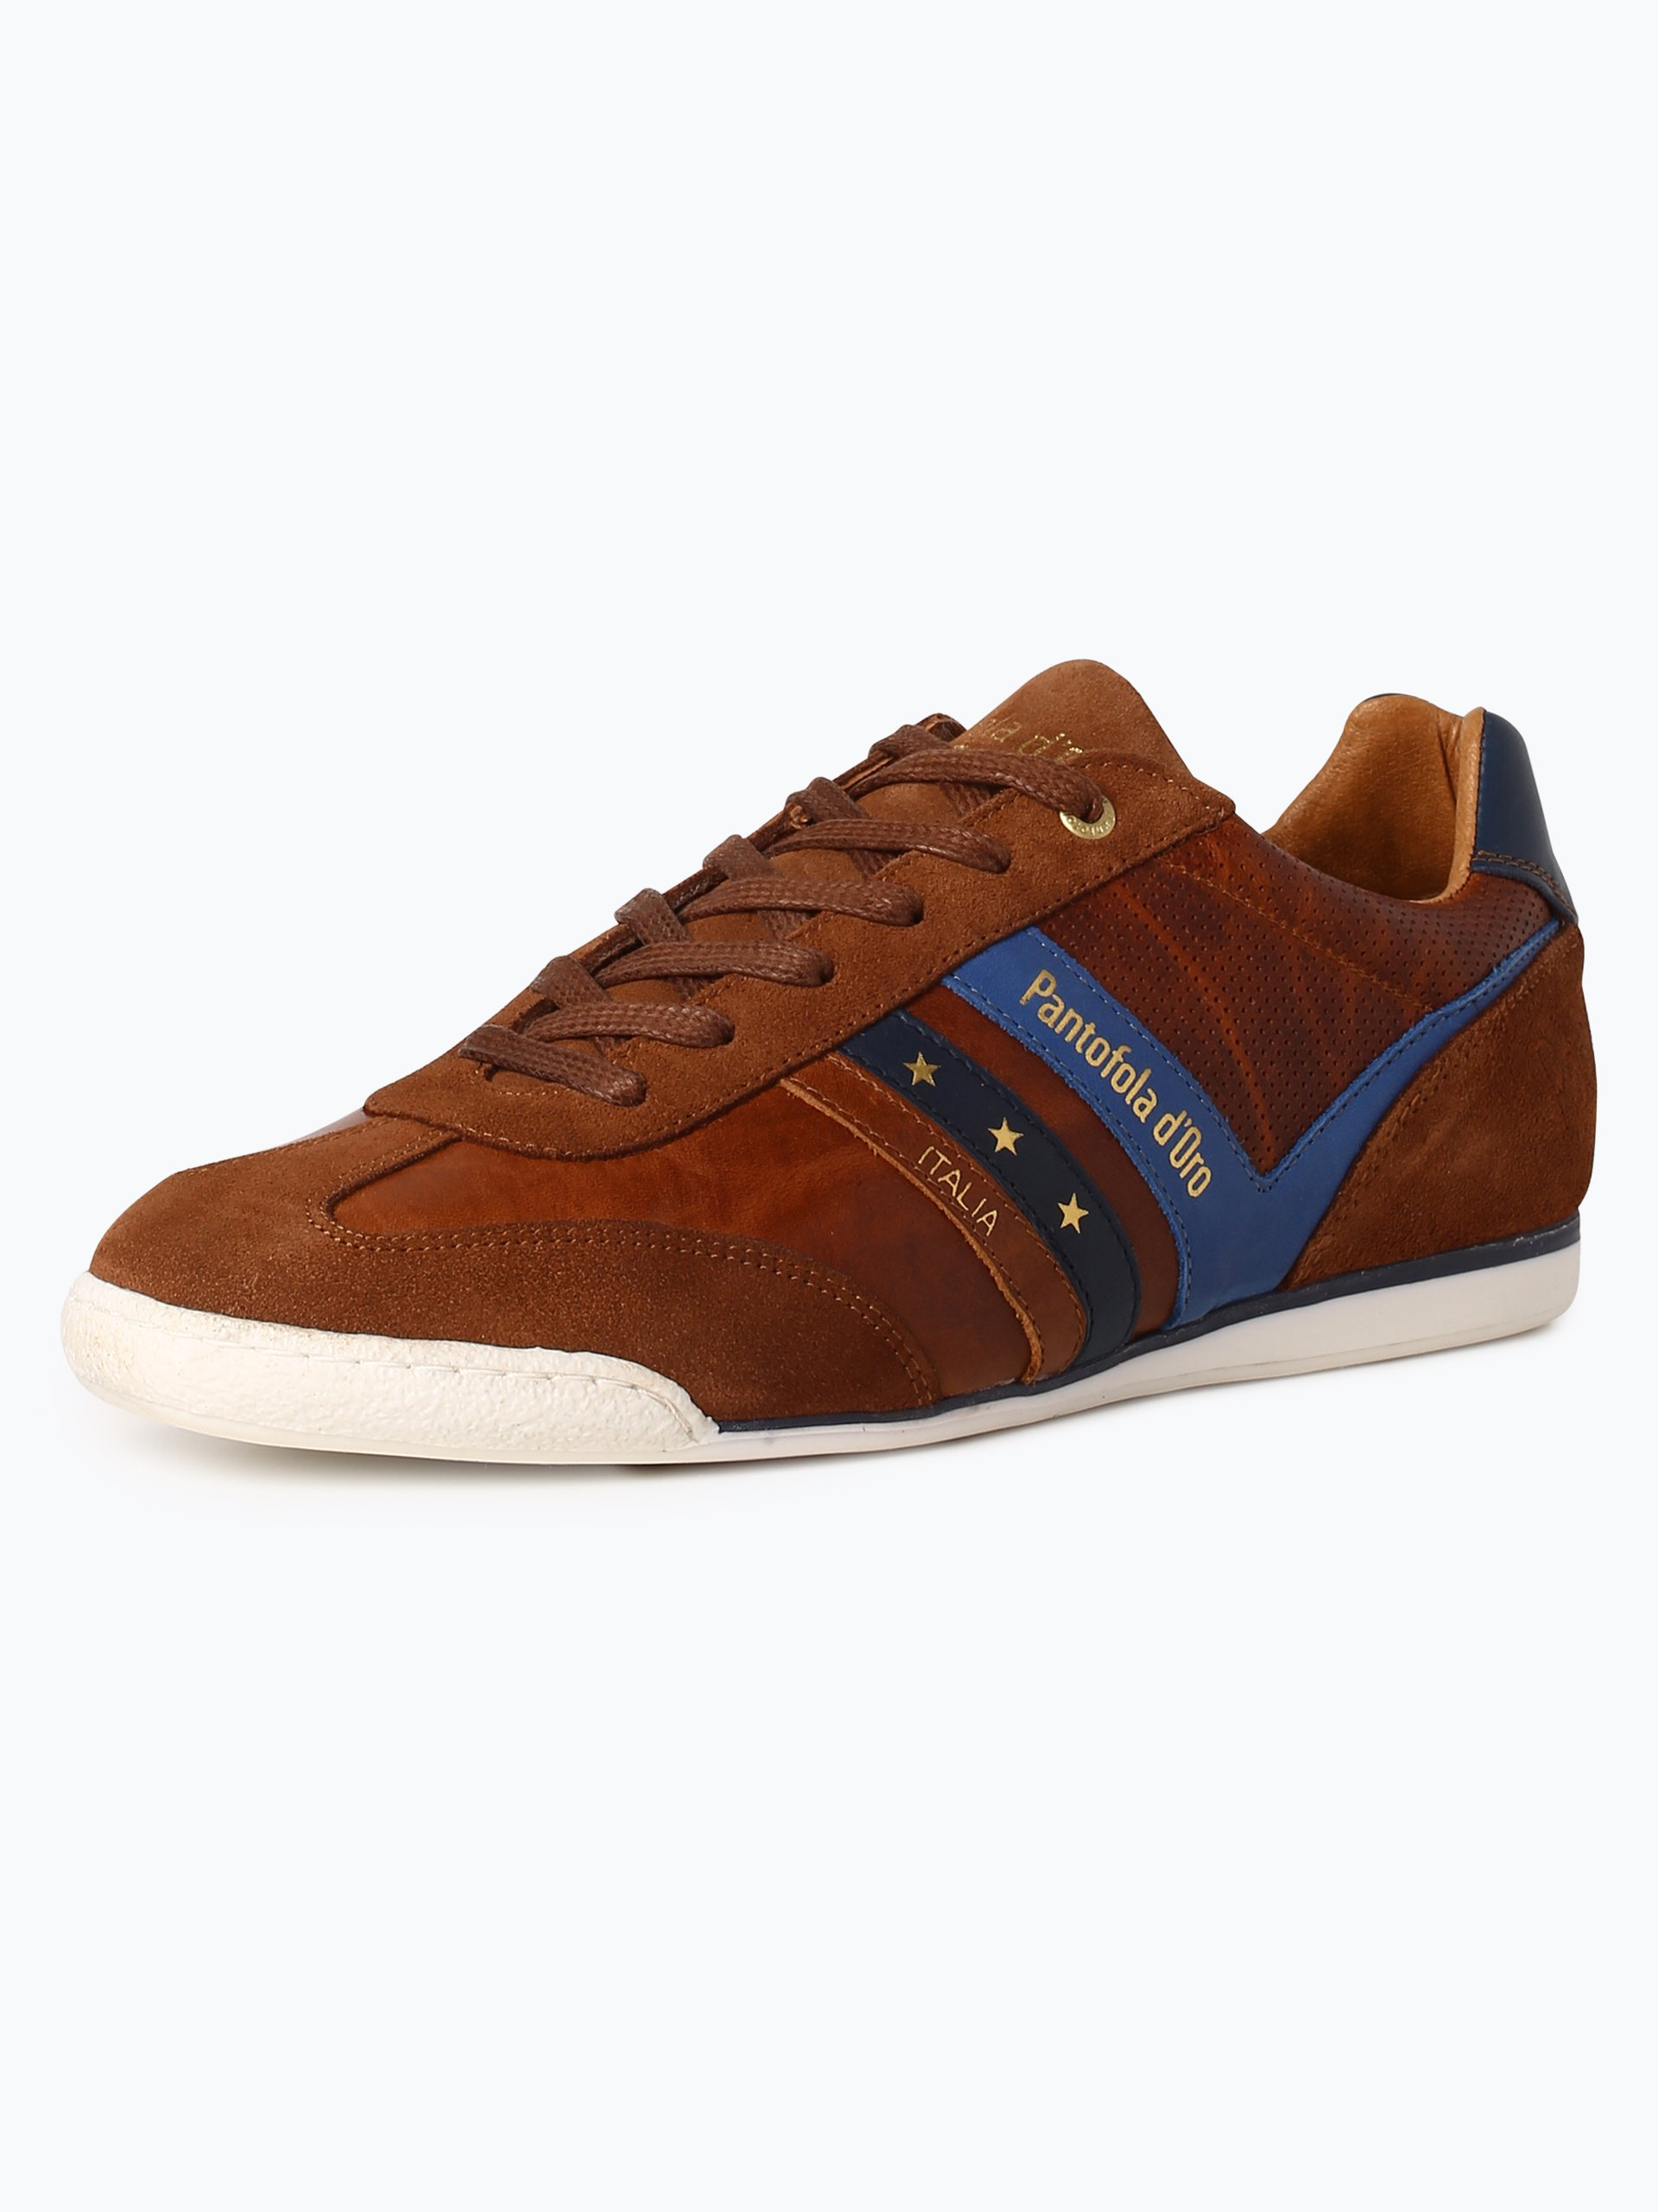 pantofola d oro herren sneaker aus leder vasto cognac. Black Bedroom Furniture Sets. Home Design Ideas